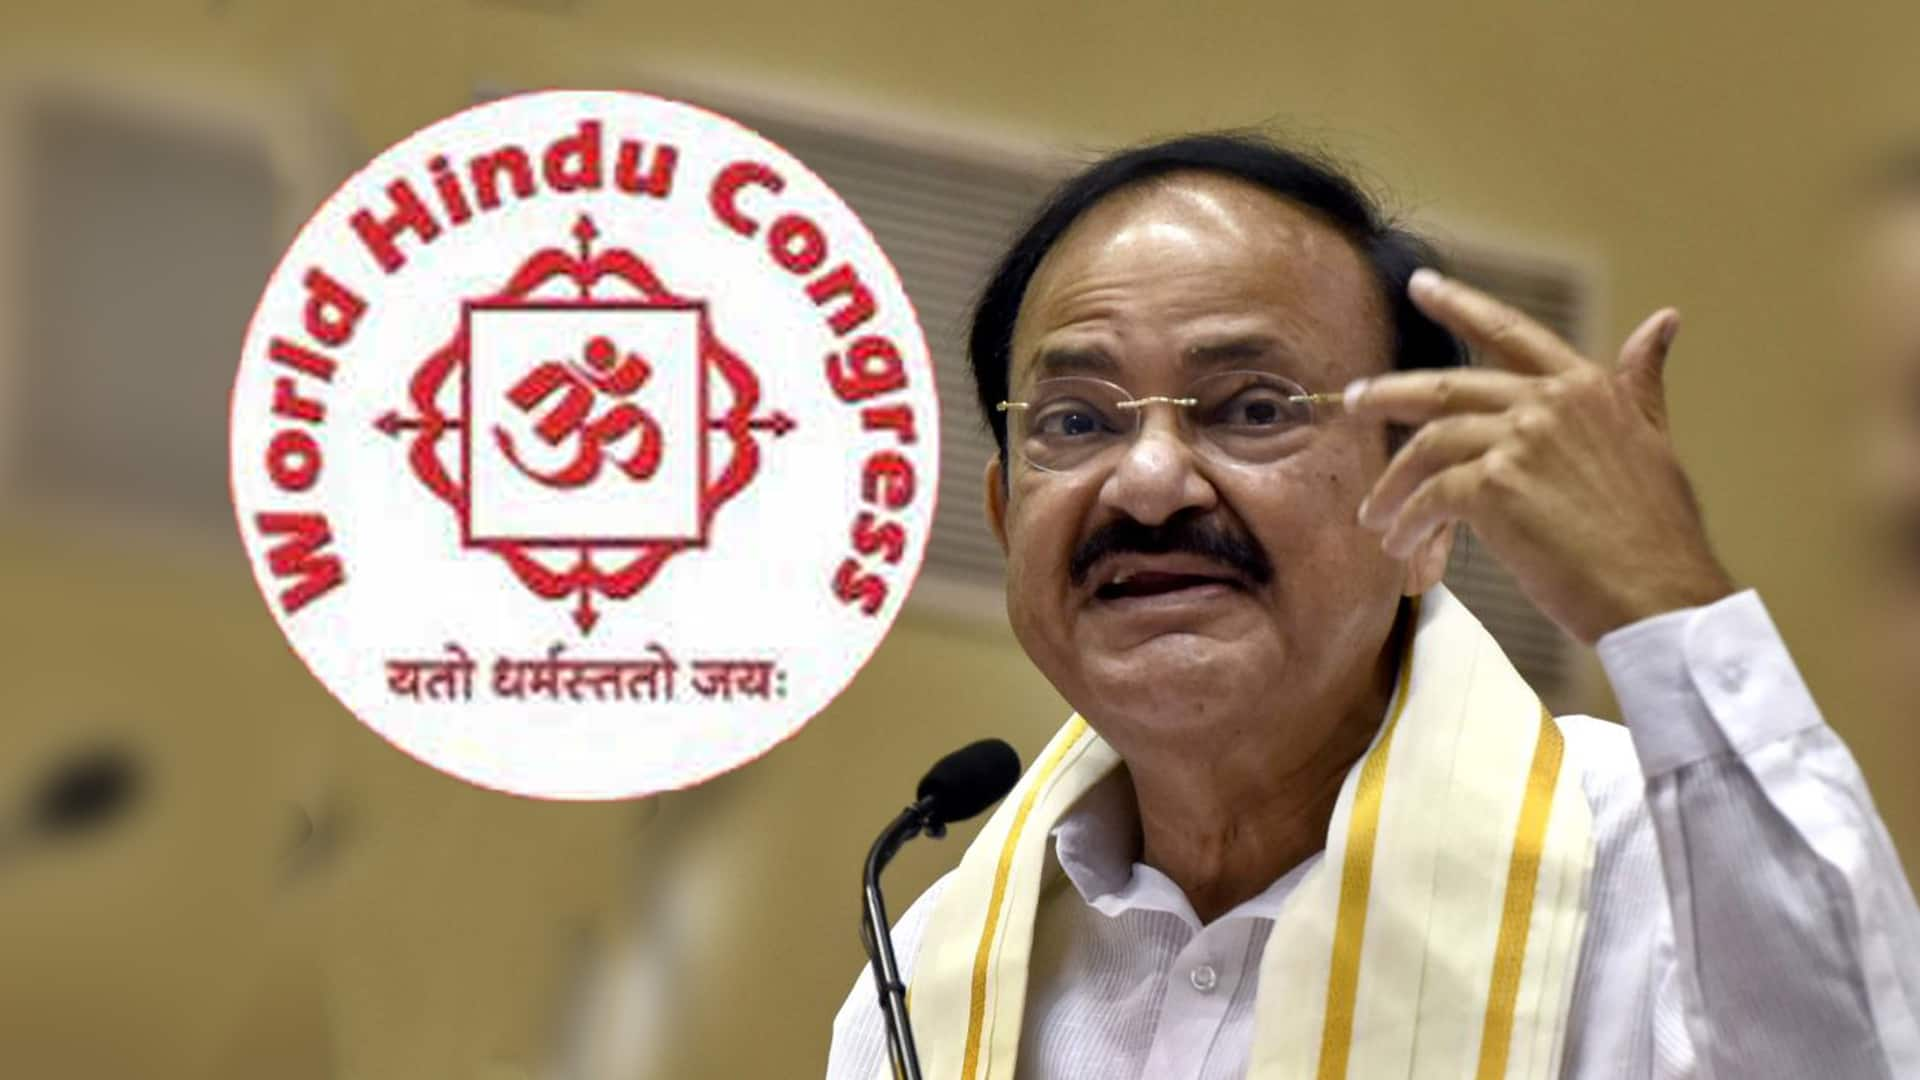 Need to preserve true values of Hinduism to alter disinformation